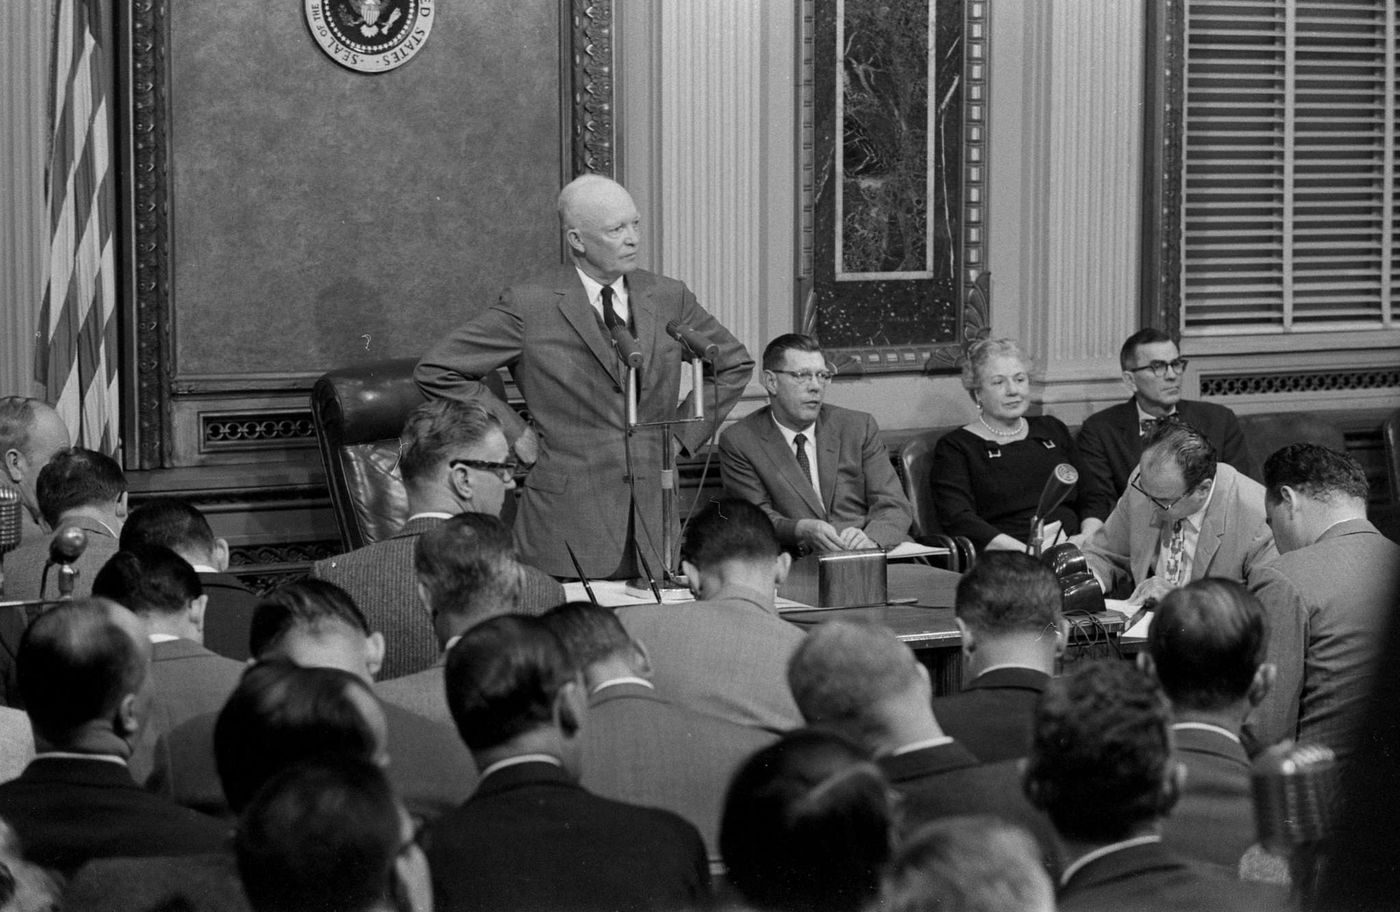 Eisenhower urged nation to seek balance